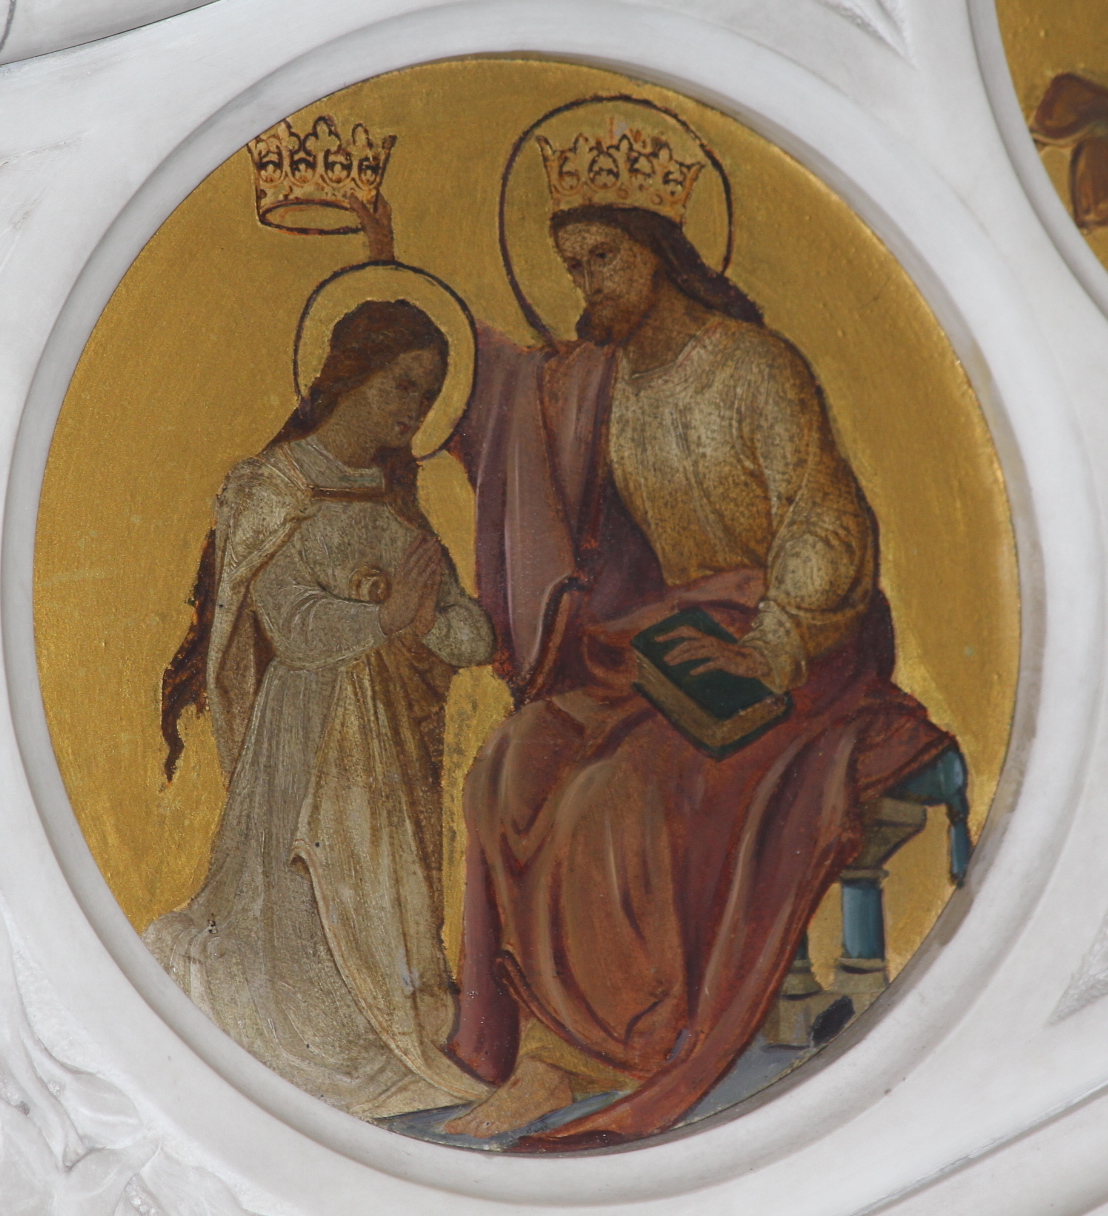 Coronation of Our Lady as Queen of Heaven